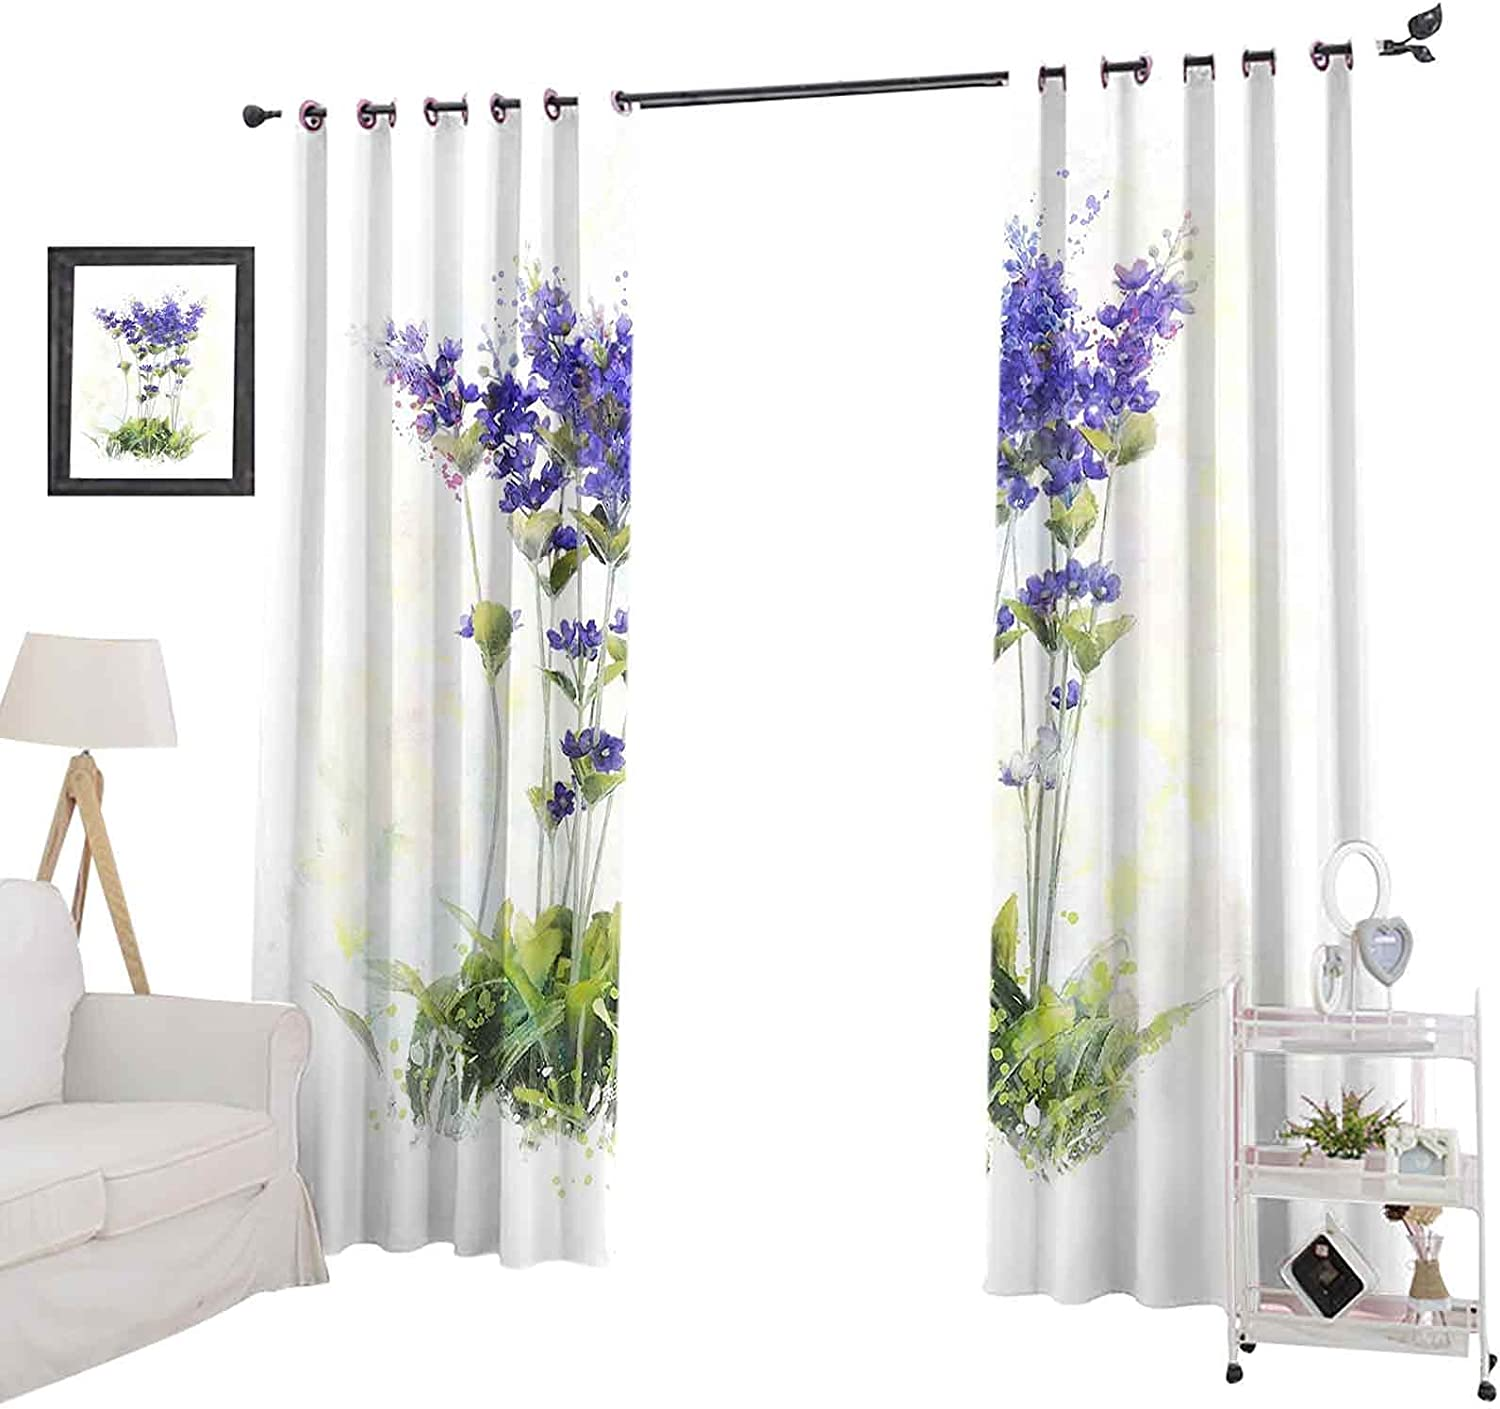 Blackout Curtains for Max 50% OFF Living Room Curtain 108 Window Inches Long Ranking TOP11